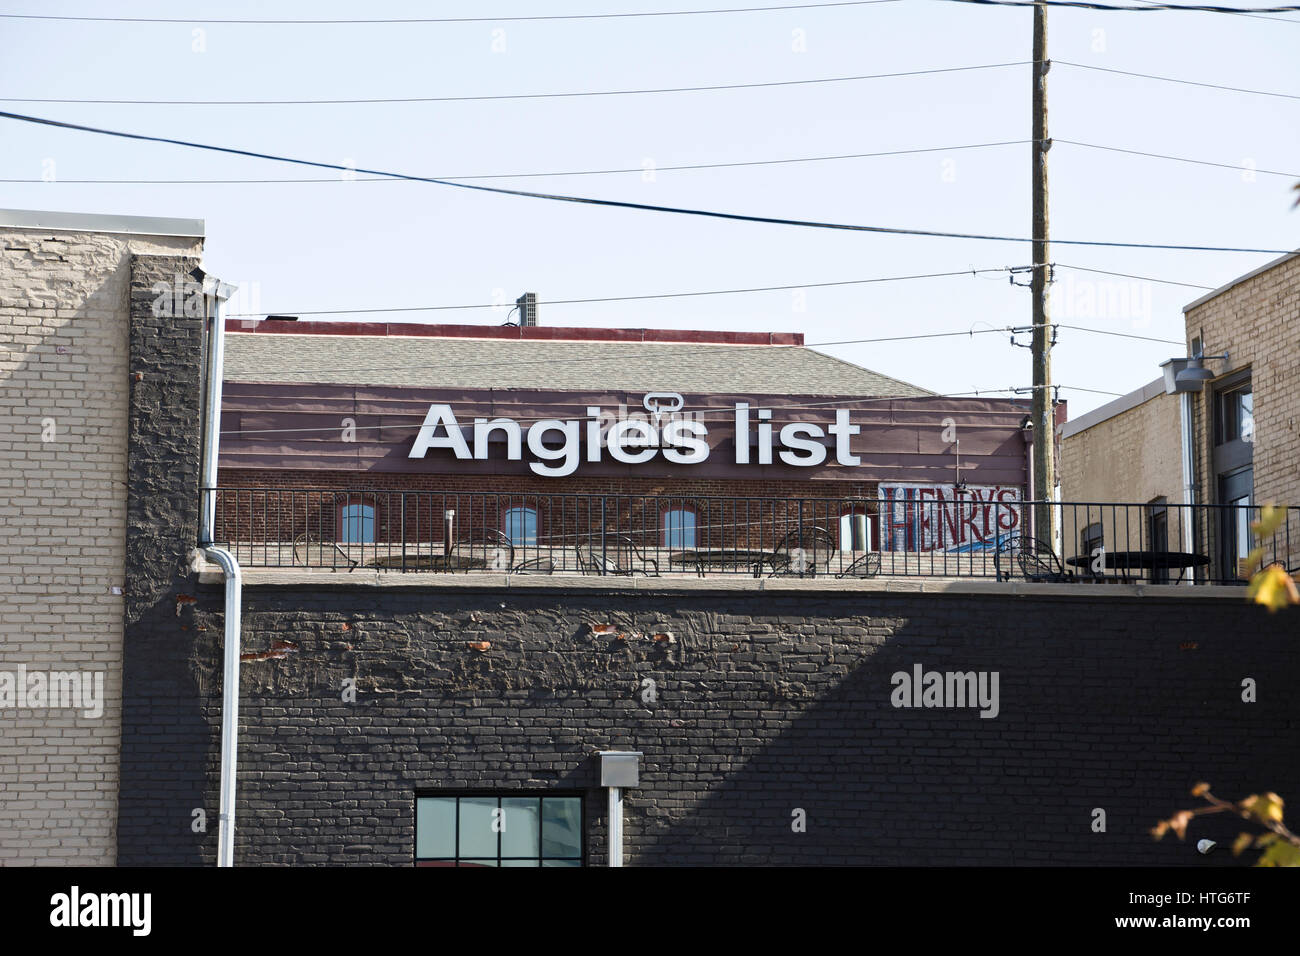 Indianapolis - Circa October 2015: Angie's List Corporate Office and Headquarters II - Stock Image